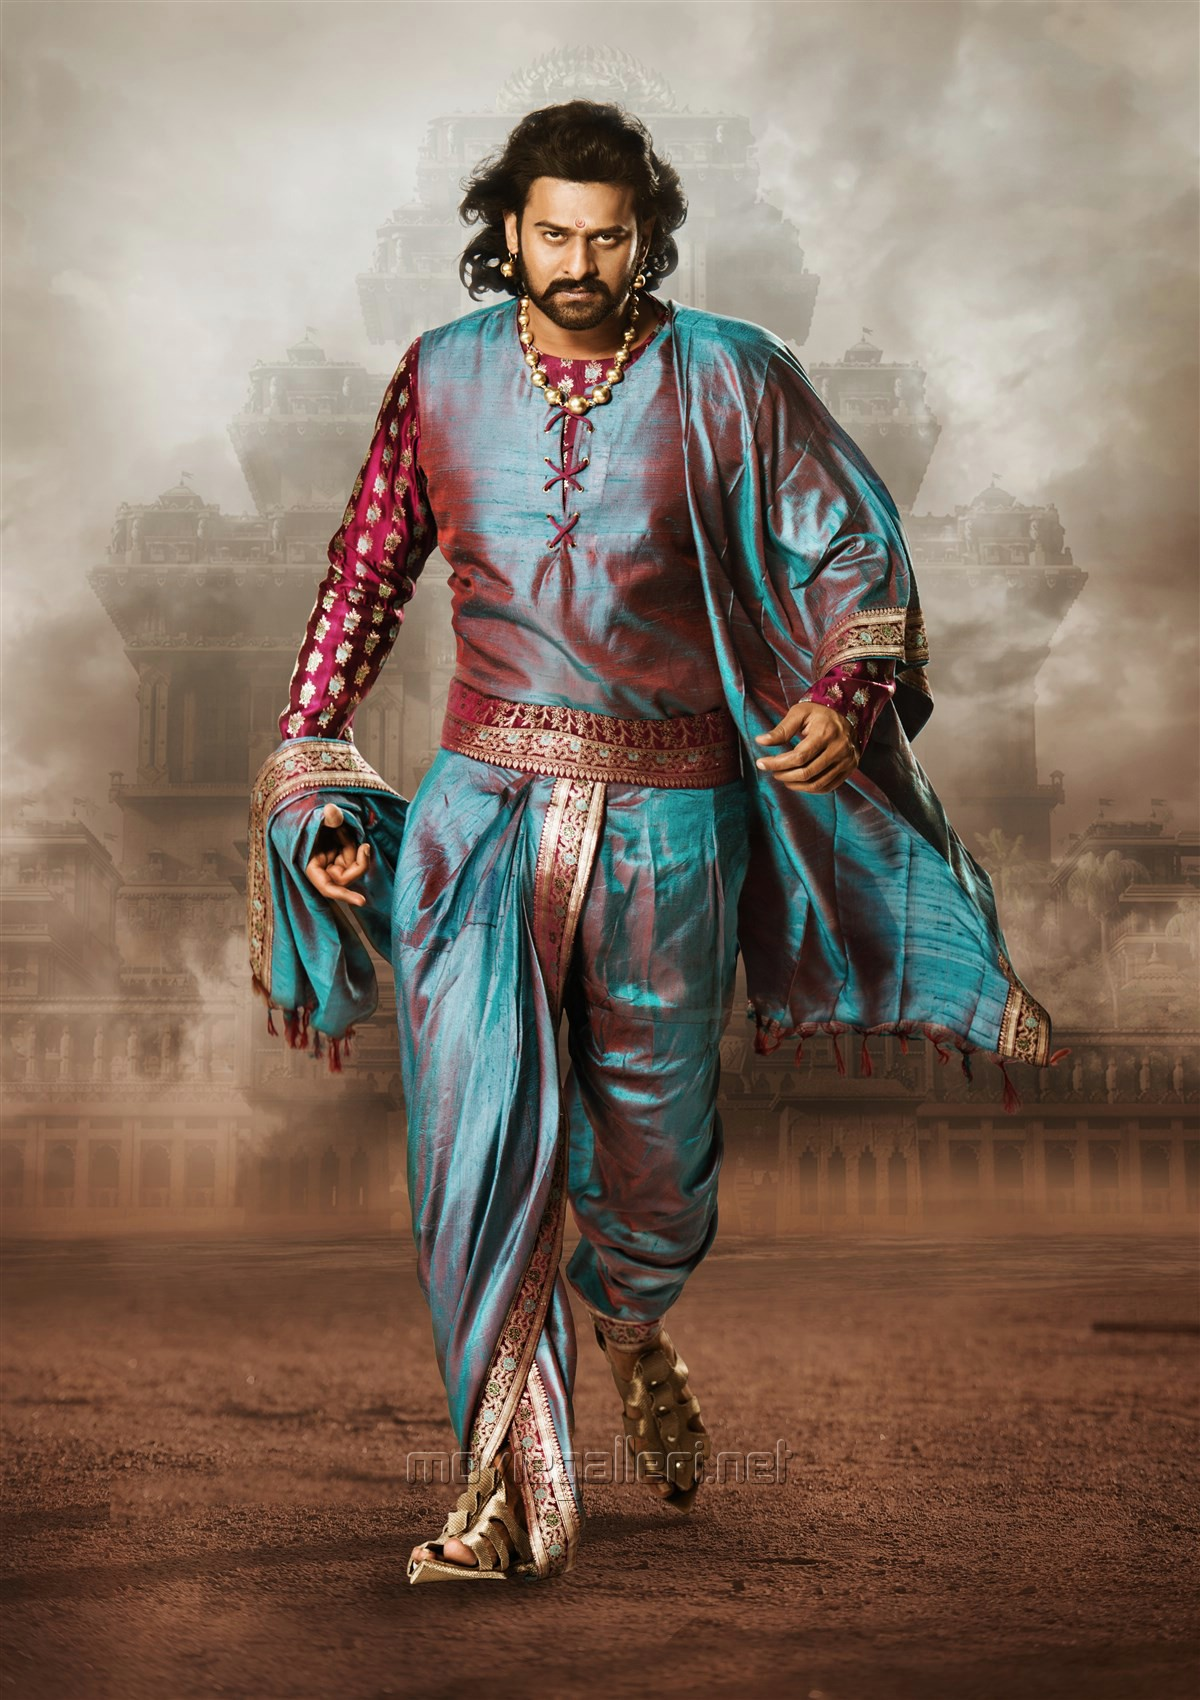 Hd wallpaper bahubali 2 - Baahubali 2 Actor Prabhas New Images Hd